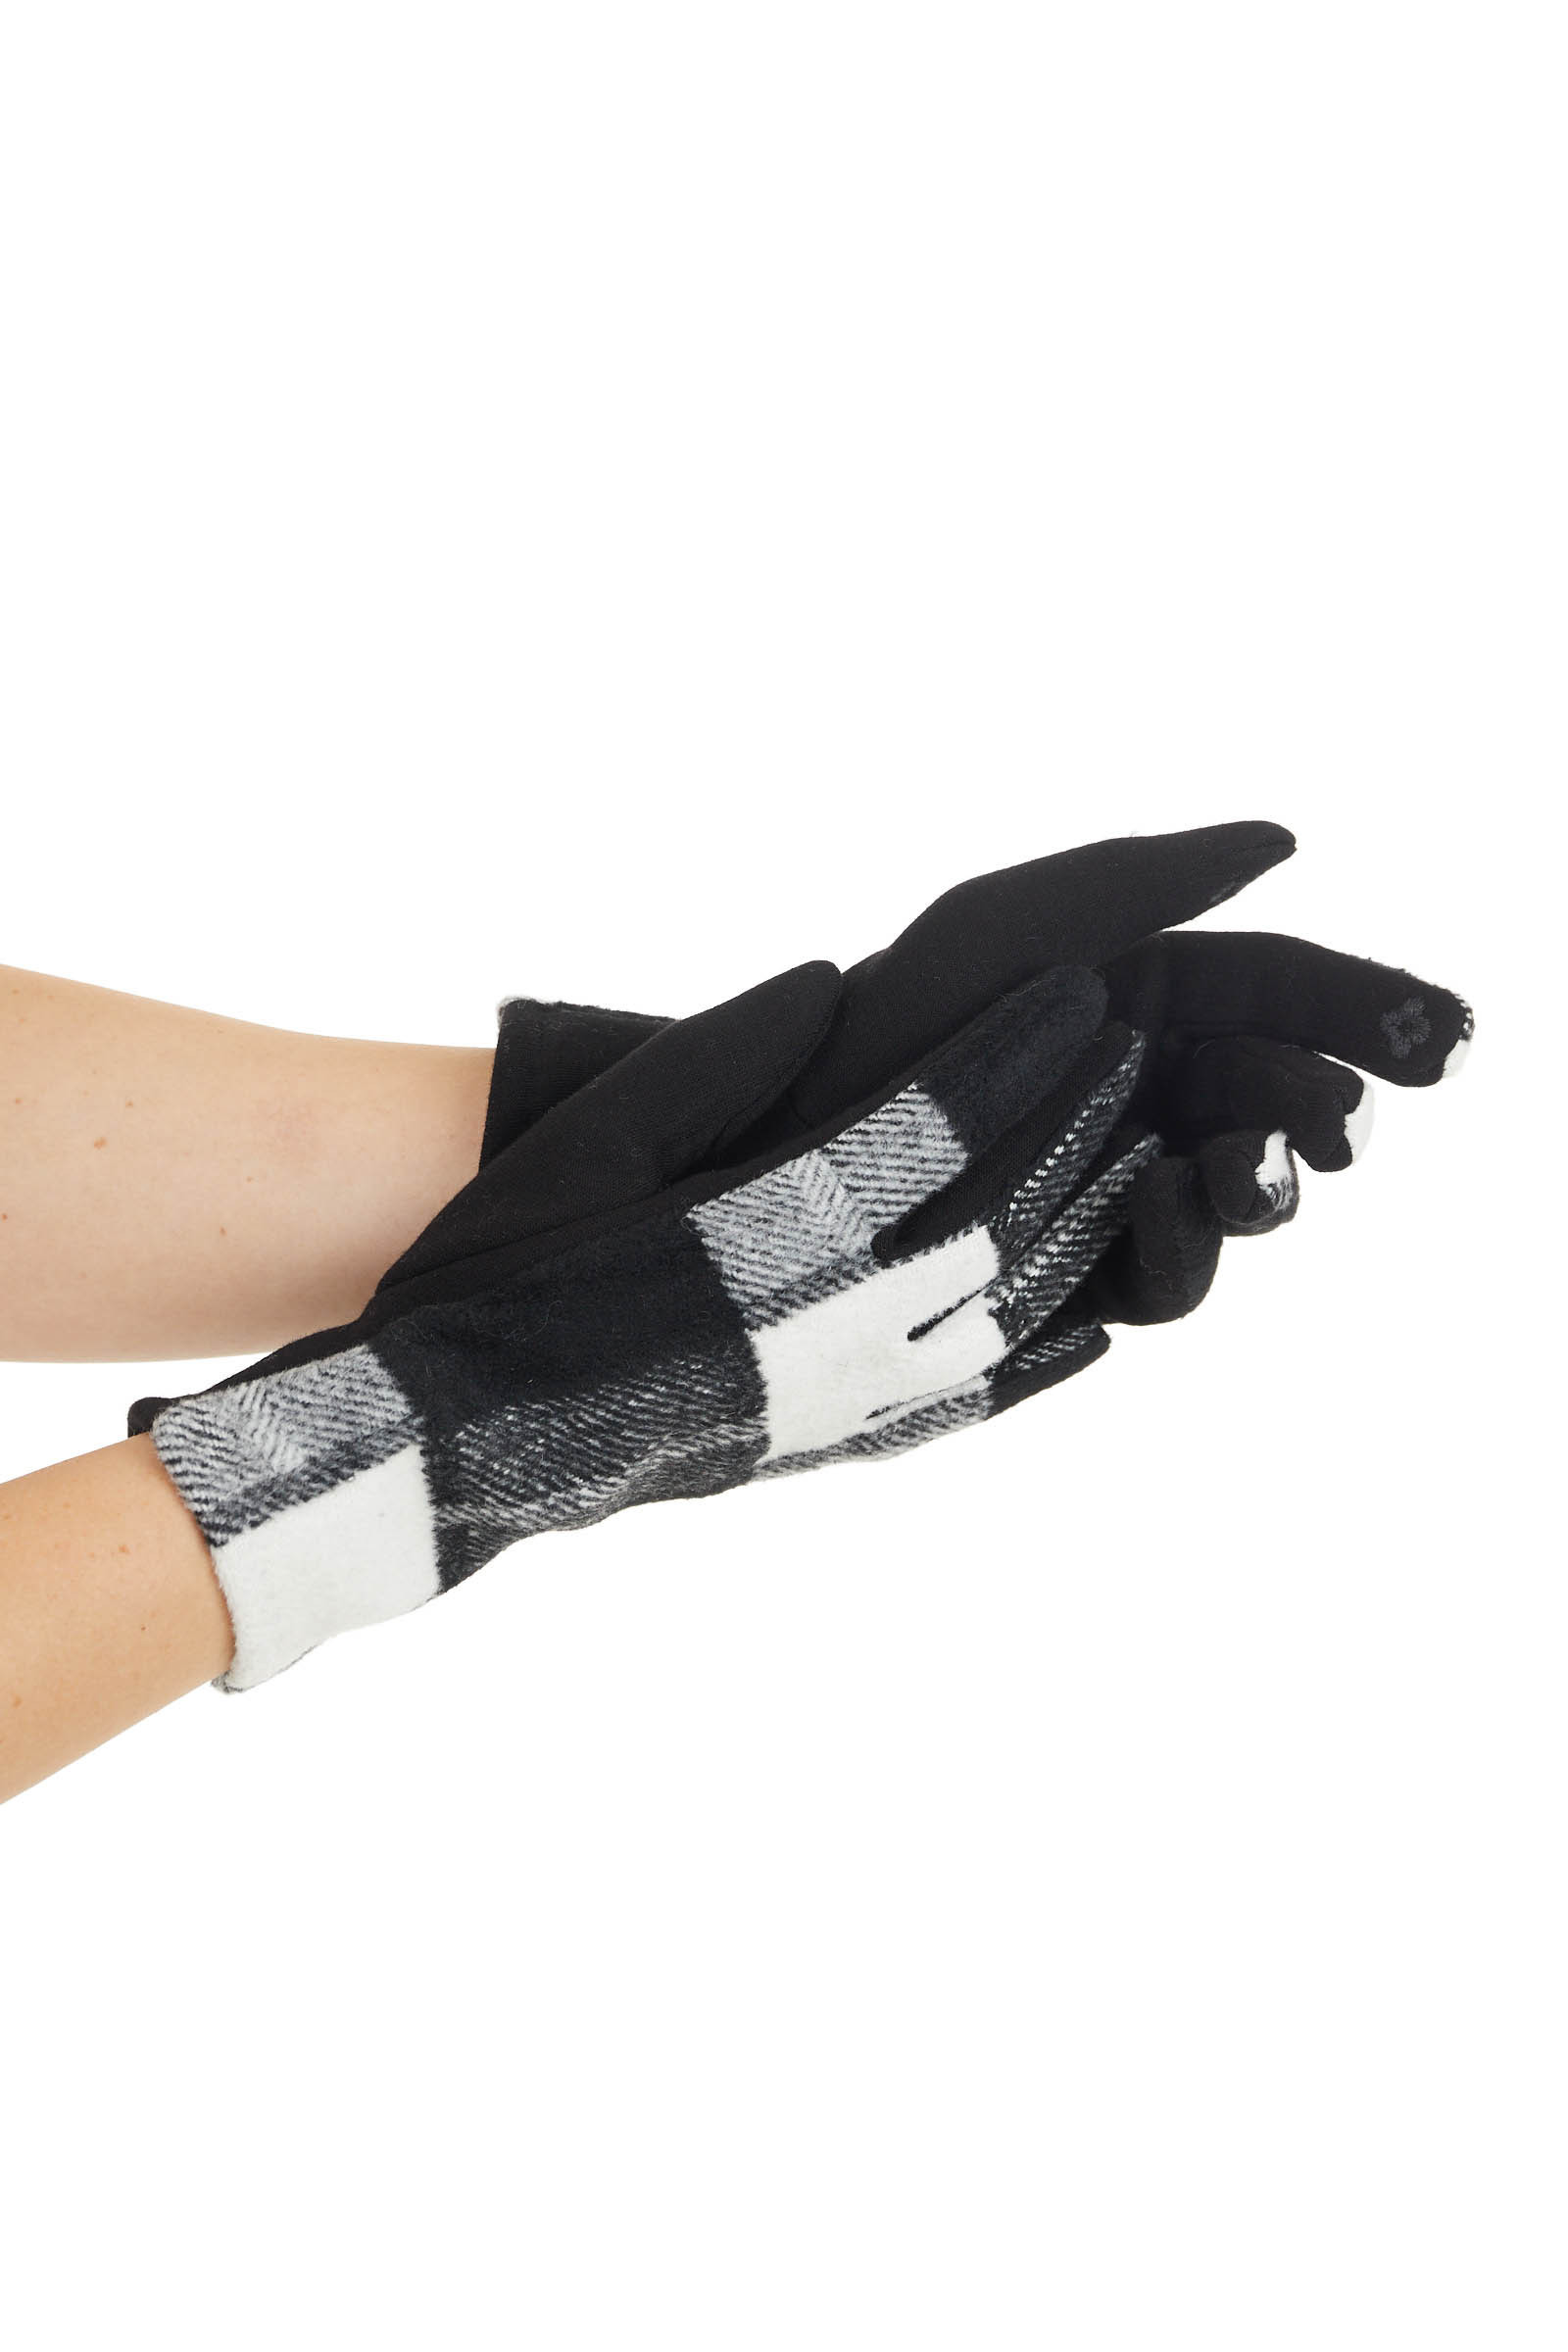 Black and Ivory Buffalo Plaid Gloves with Touchscreen Pads